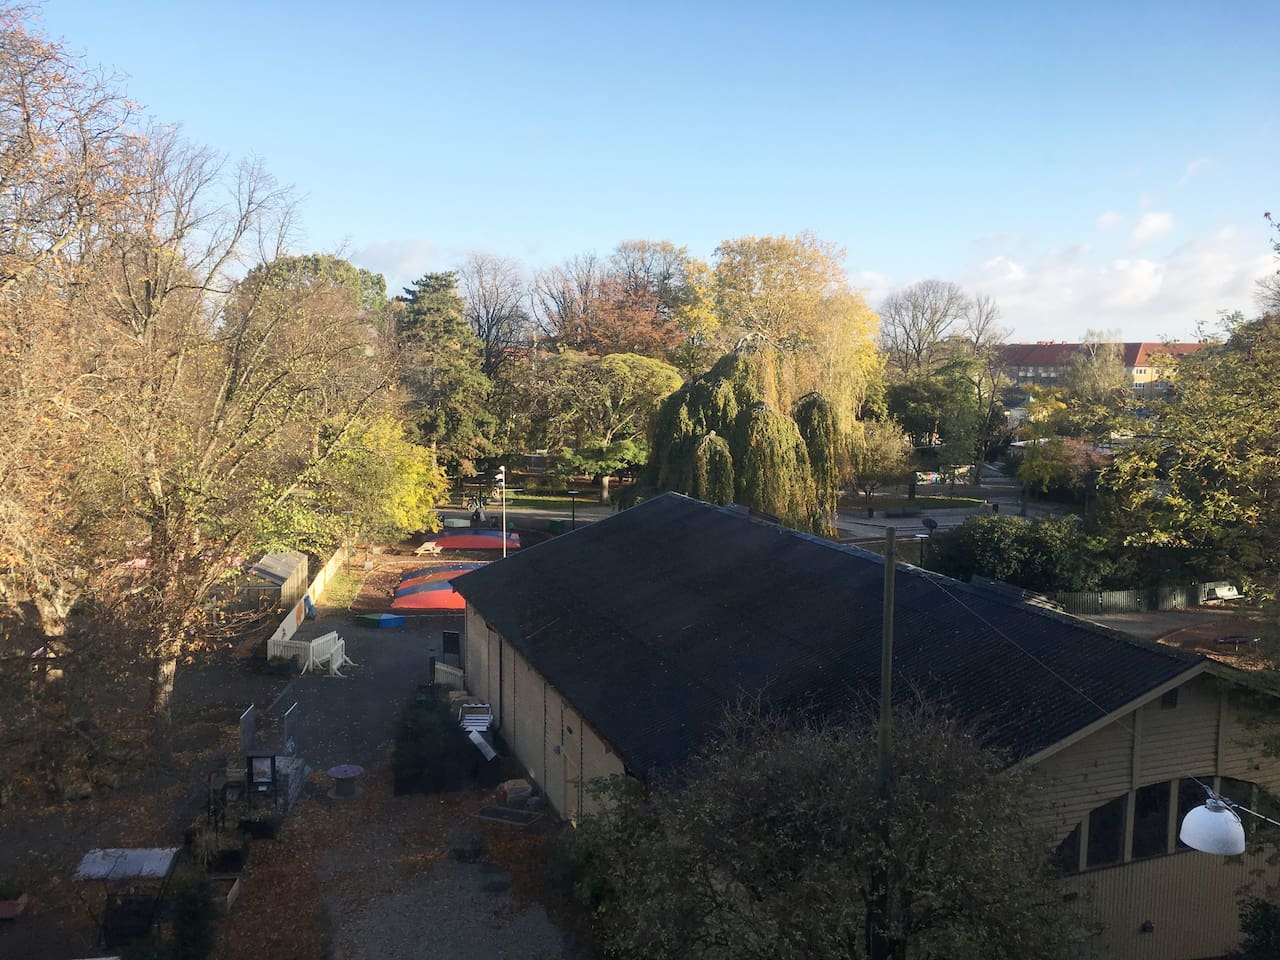 The view from the living room: Folkets Park, with music venues, play ground, nice bars and restaurants, green areas for picnics.